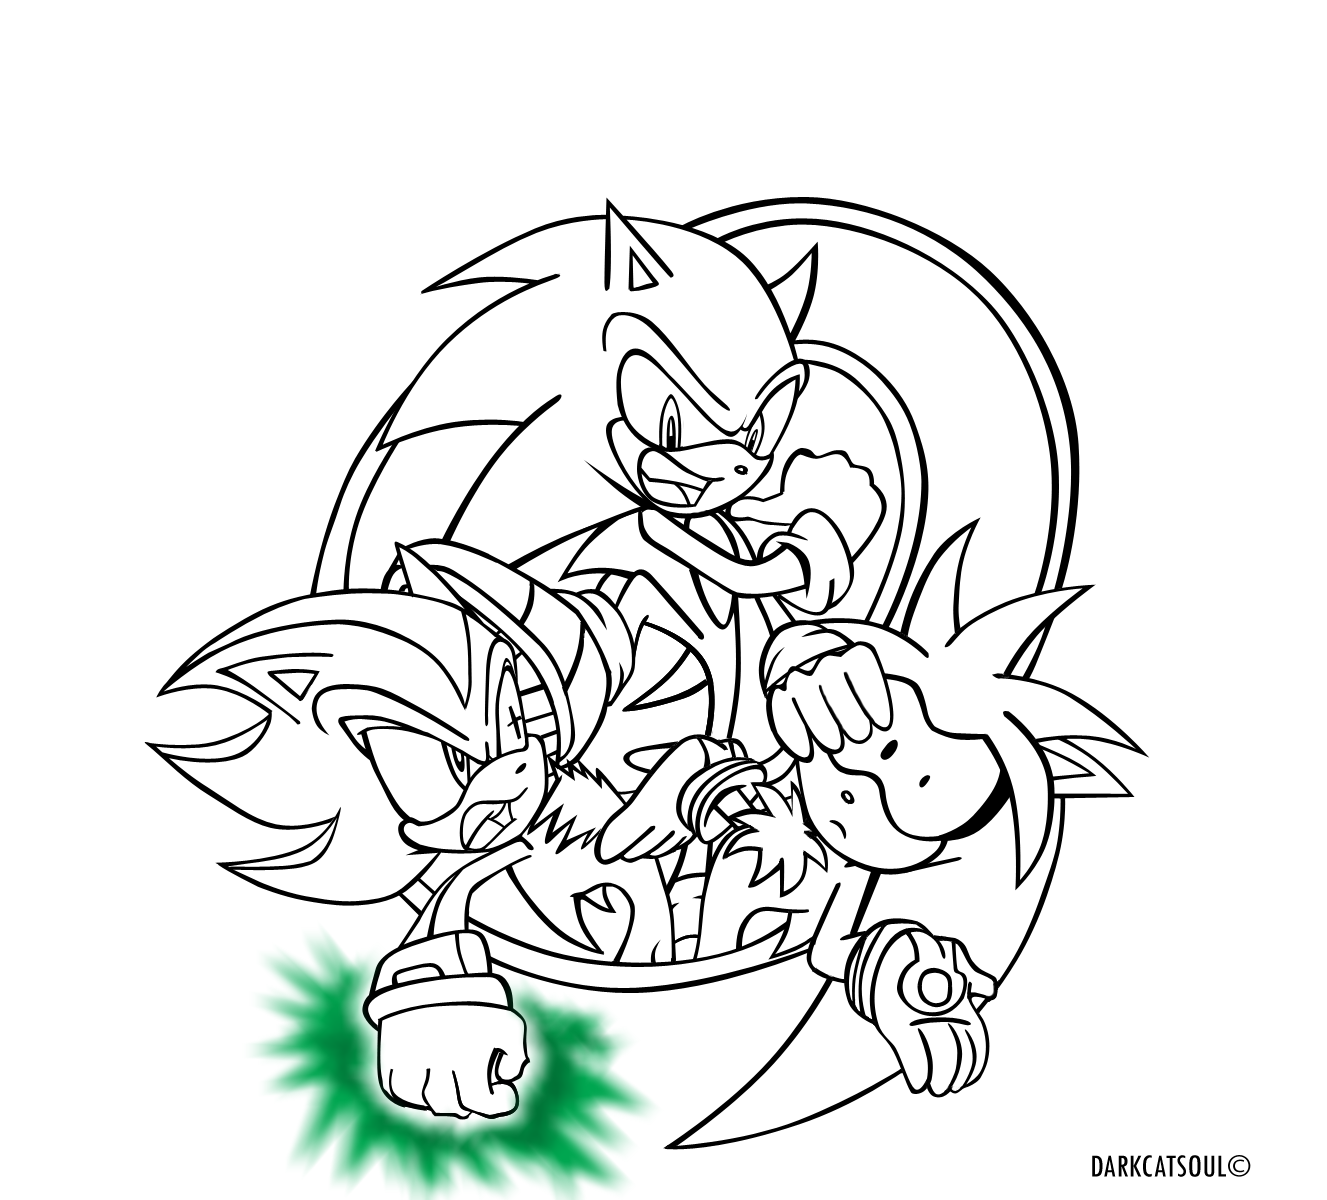 super shadow drawing at getdrawings com free for personal use